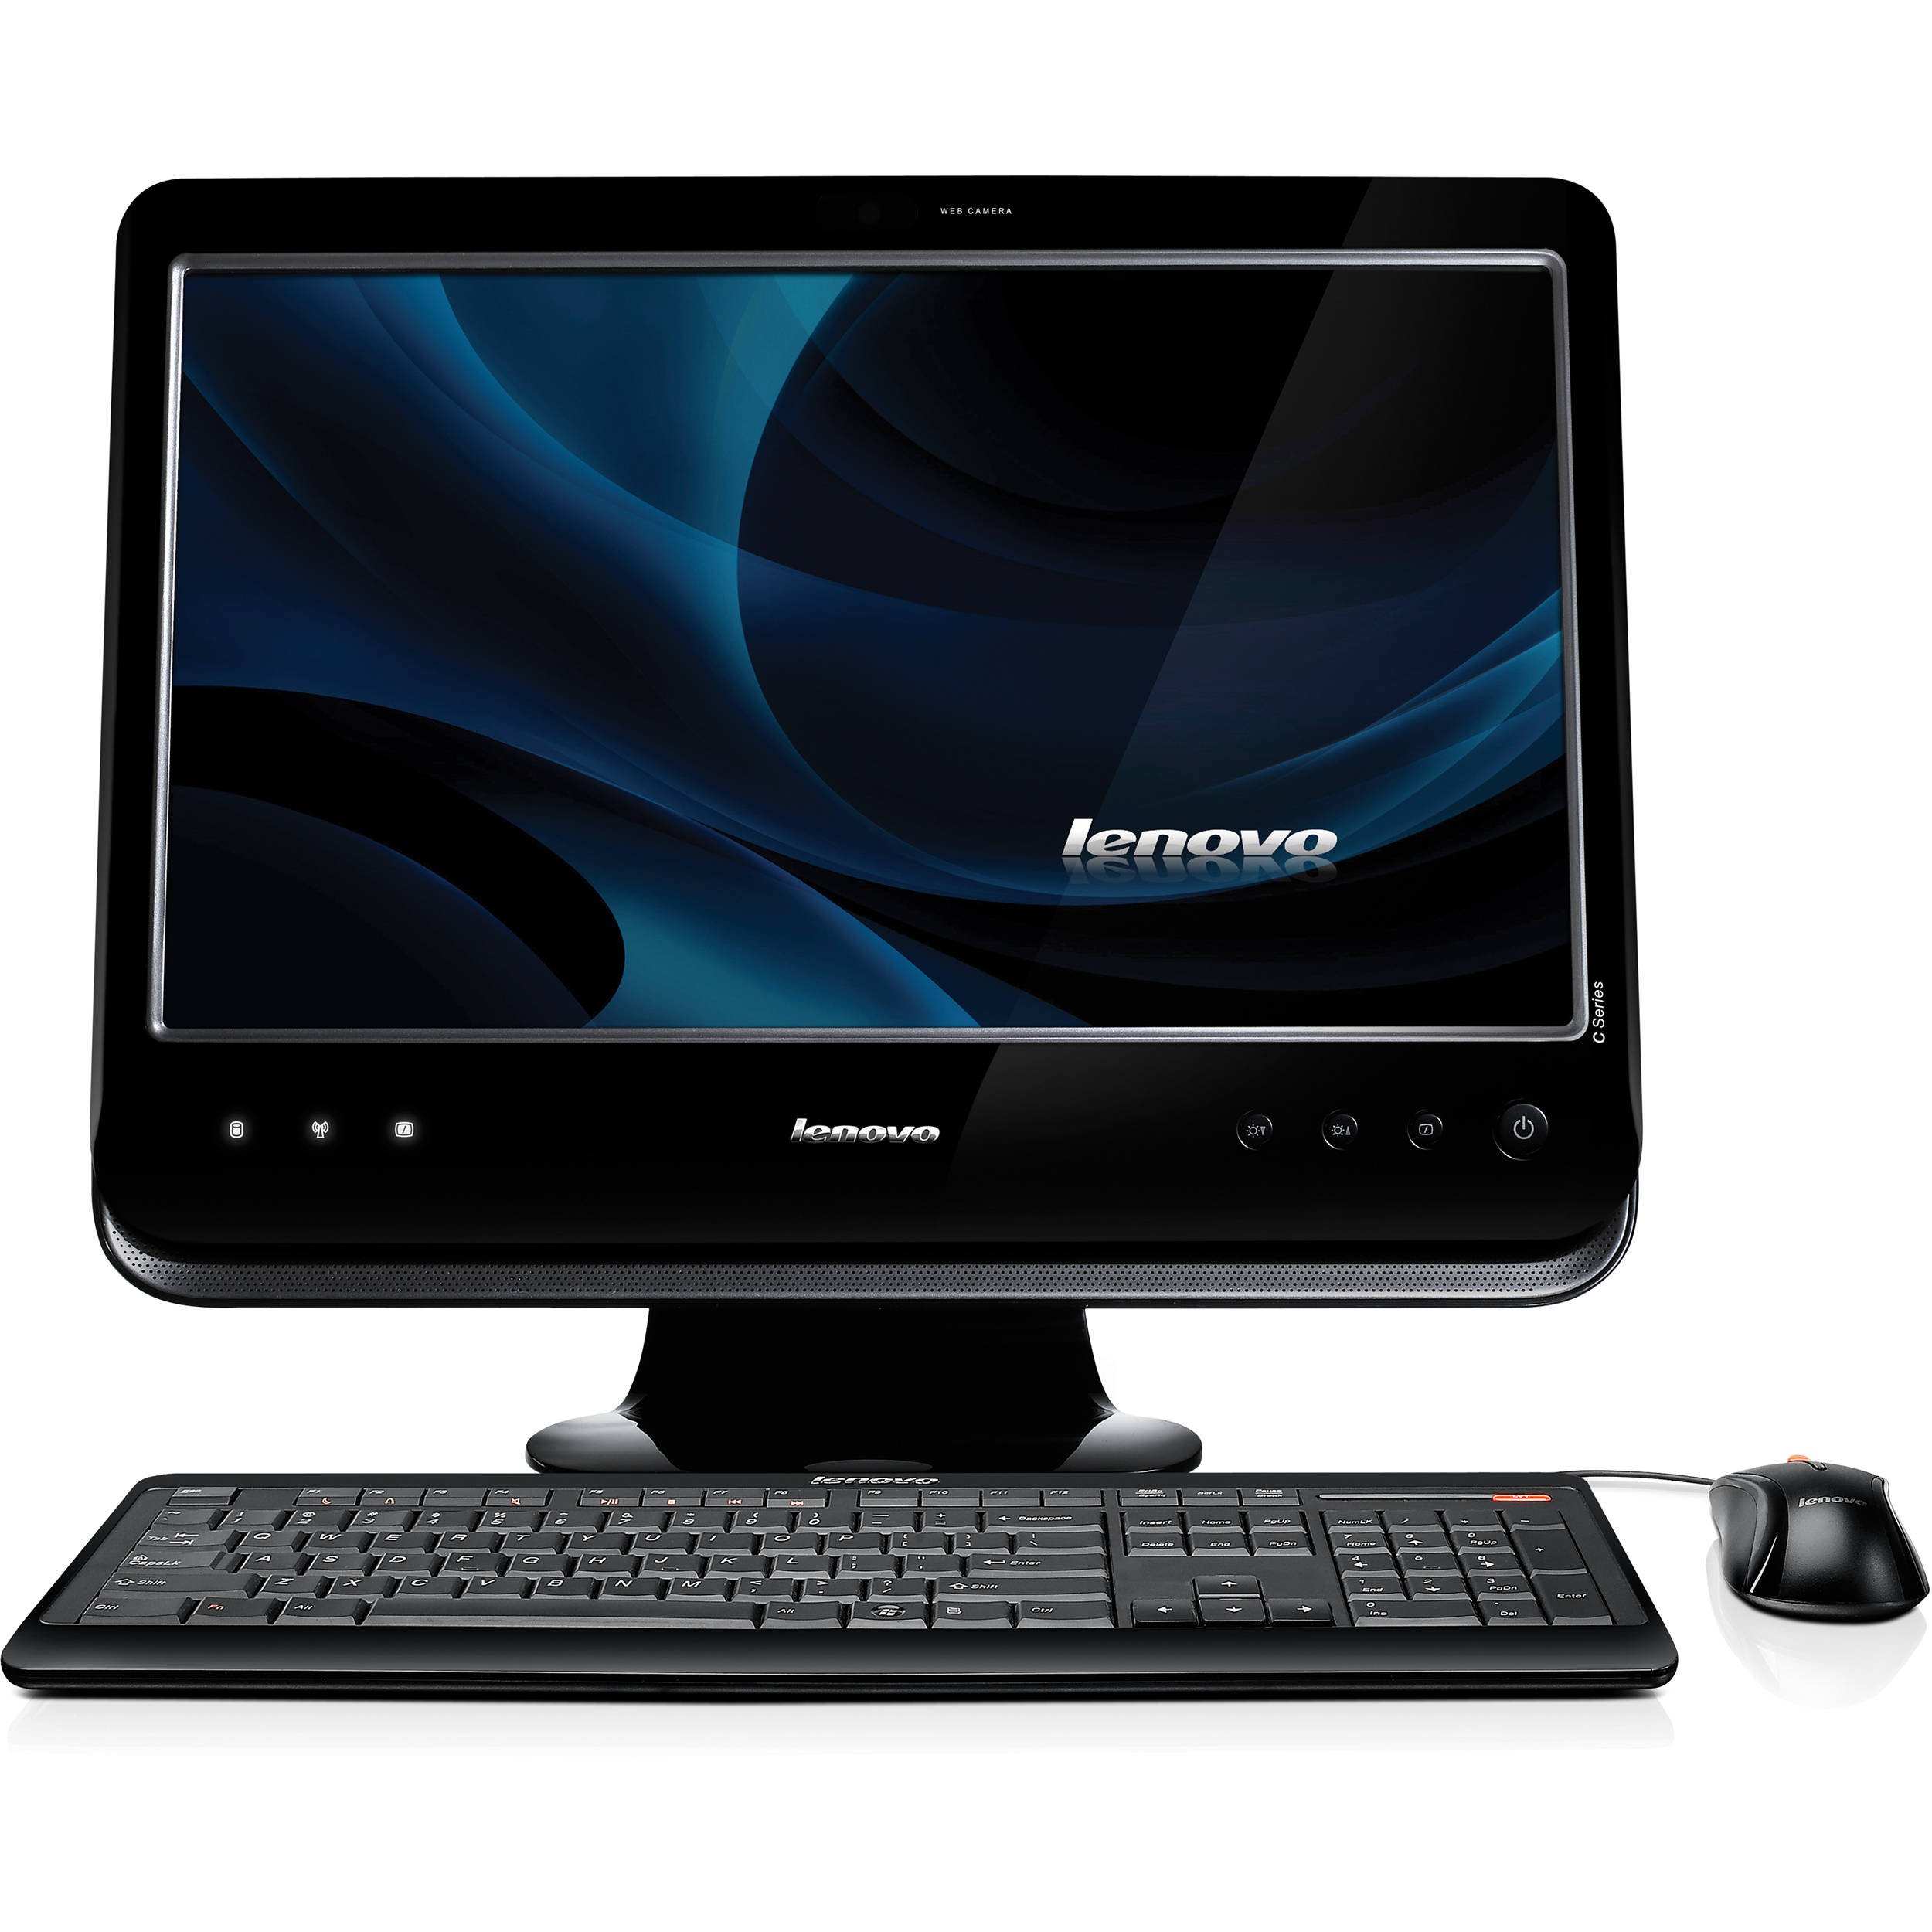 Lenovo 500GB C205 All-in-One Desktop PC with 18.5\